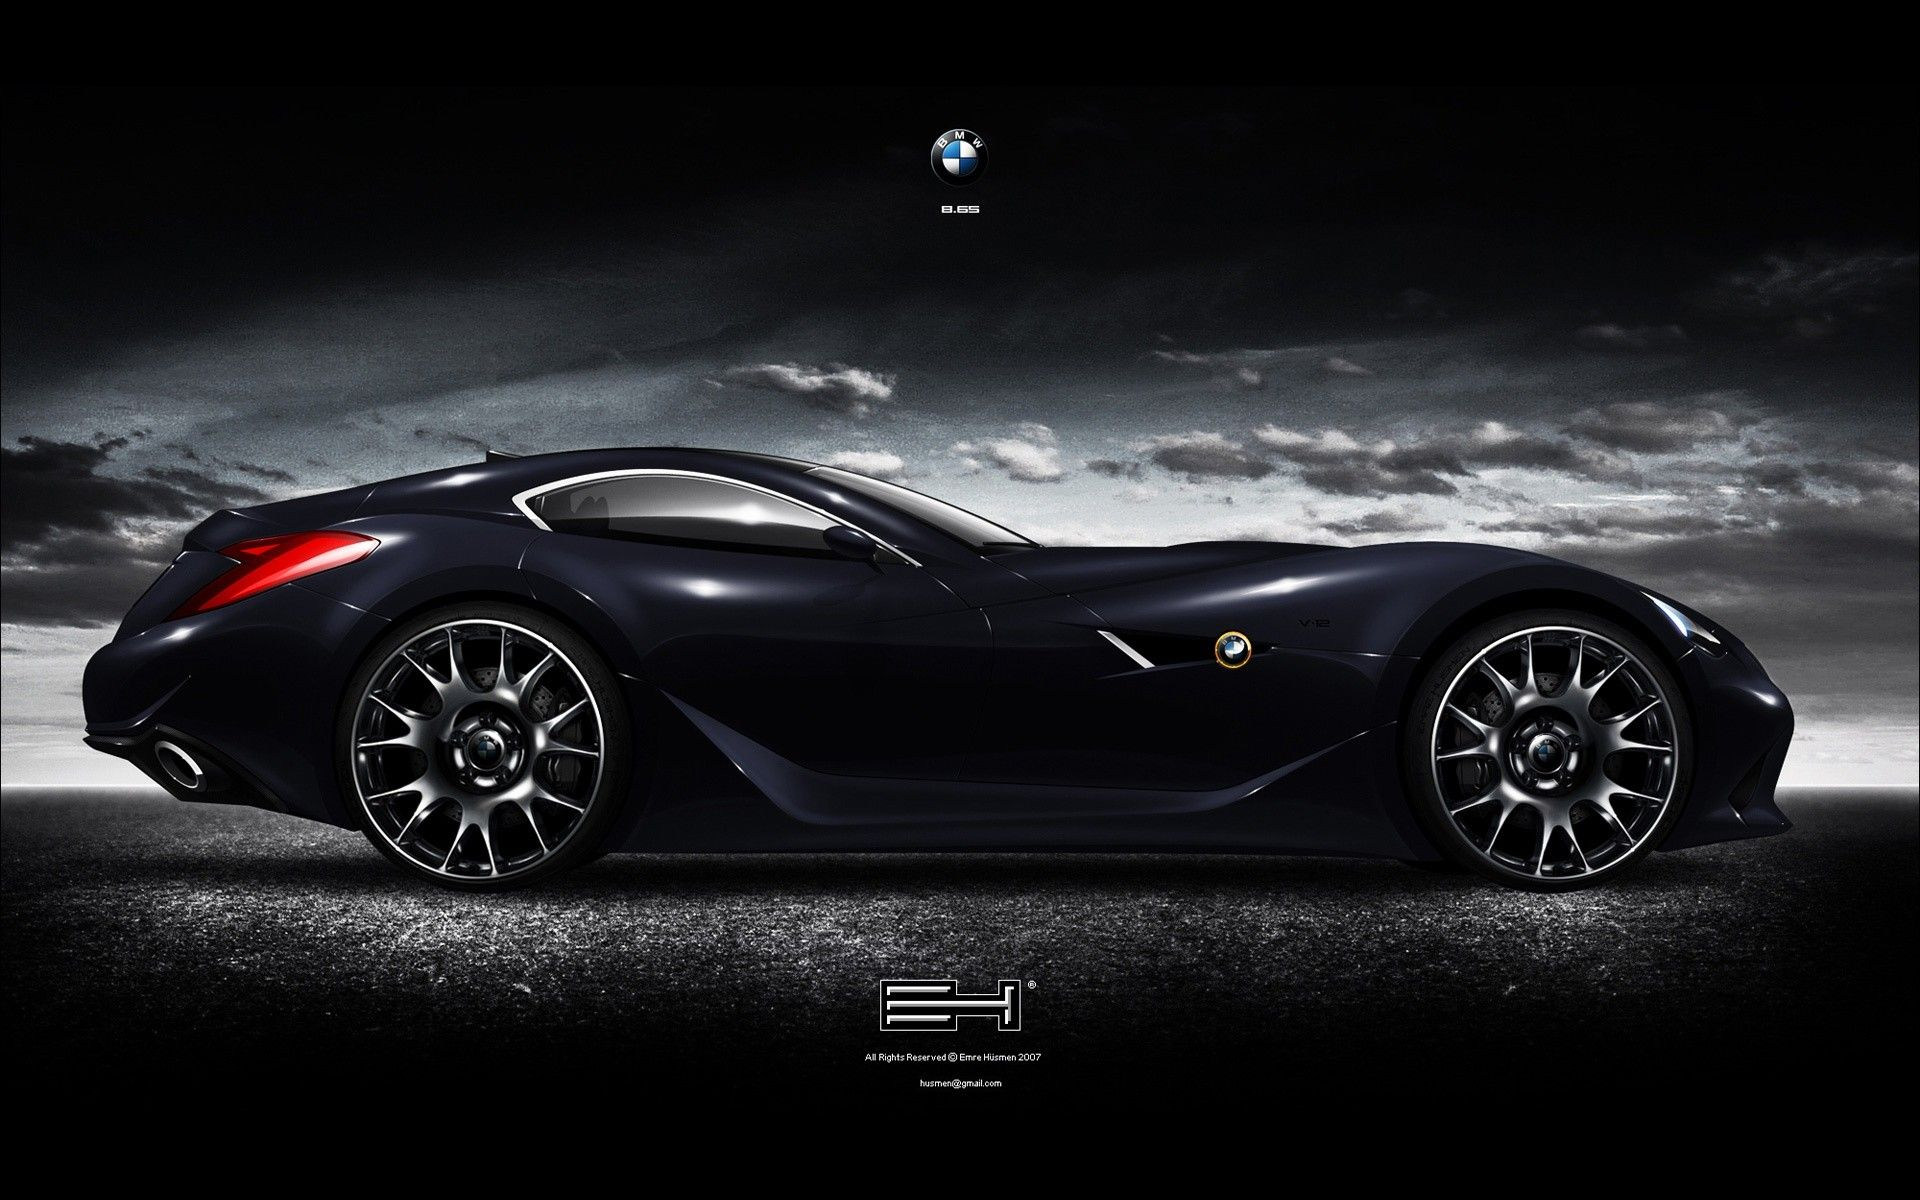 Wallpapers Of Super Cars